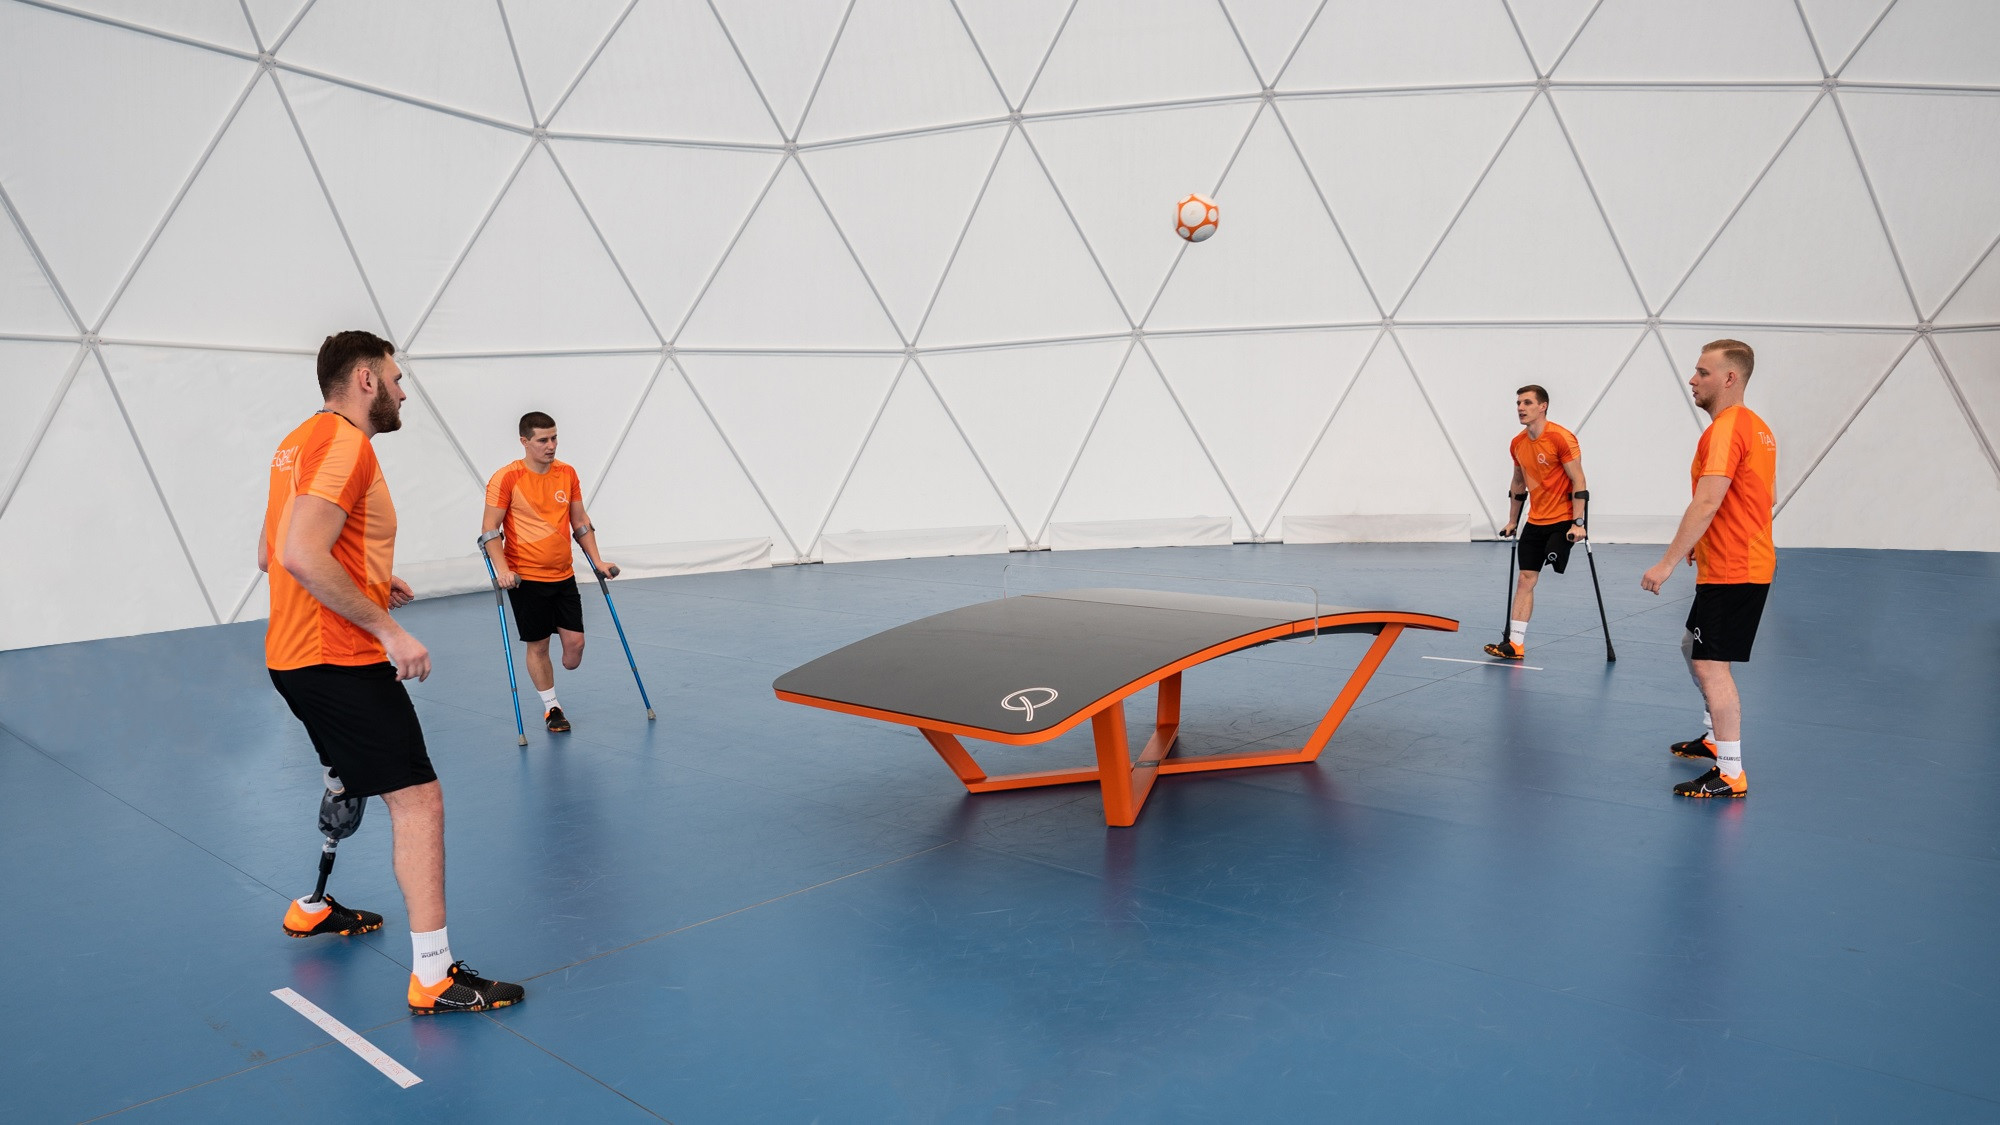 International Federation of Teqball formally launches Para teqball